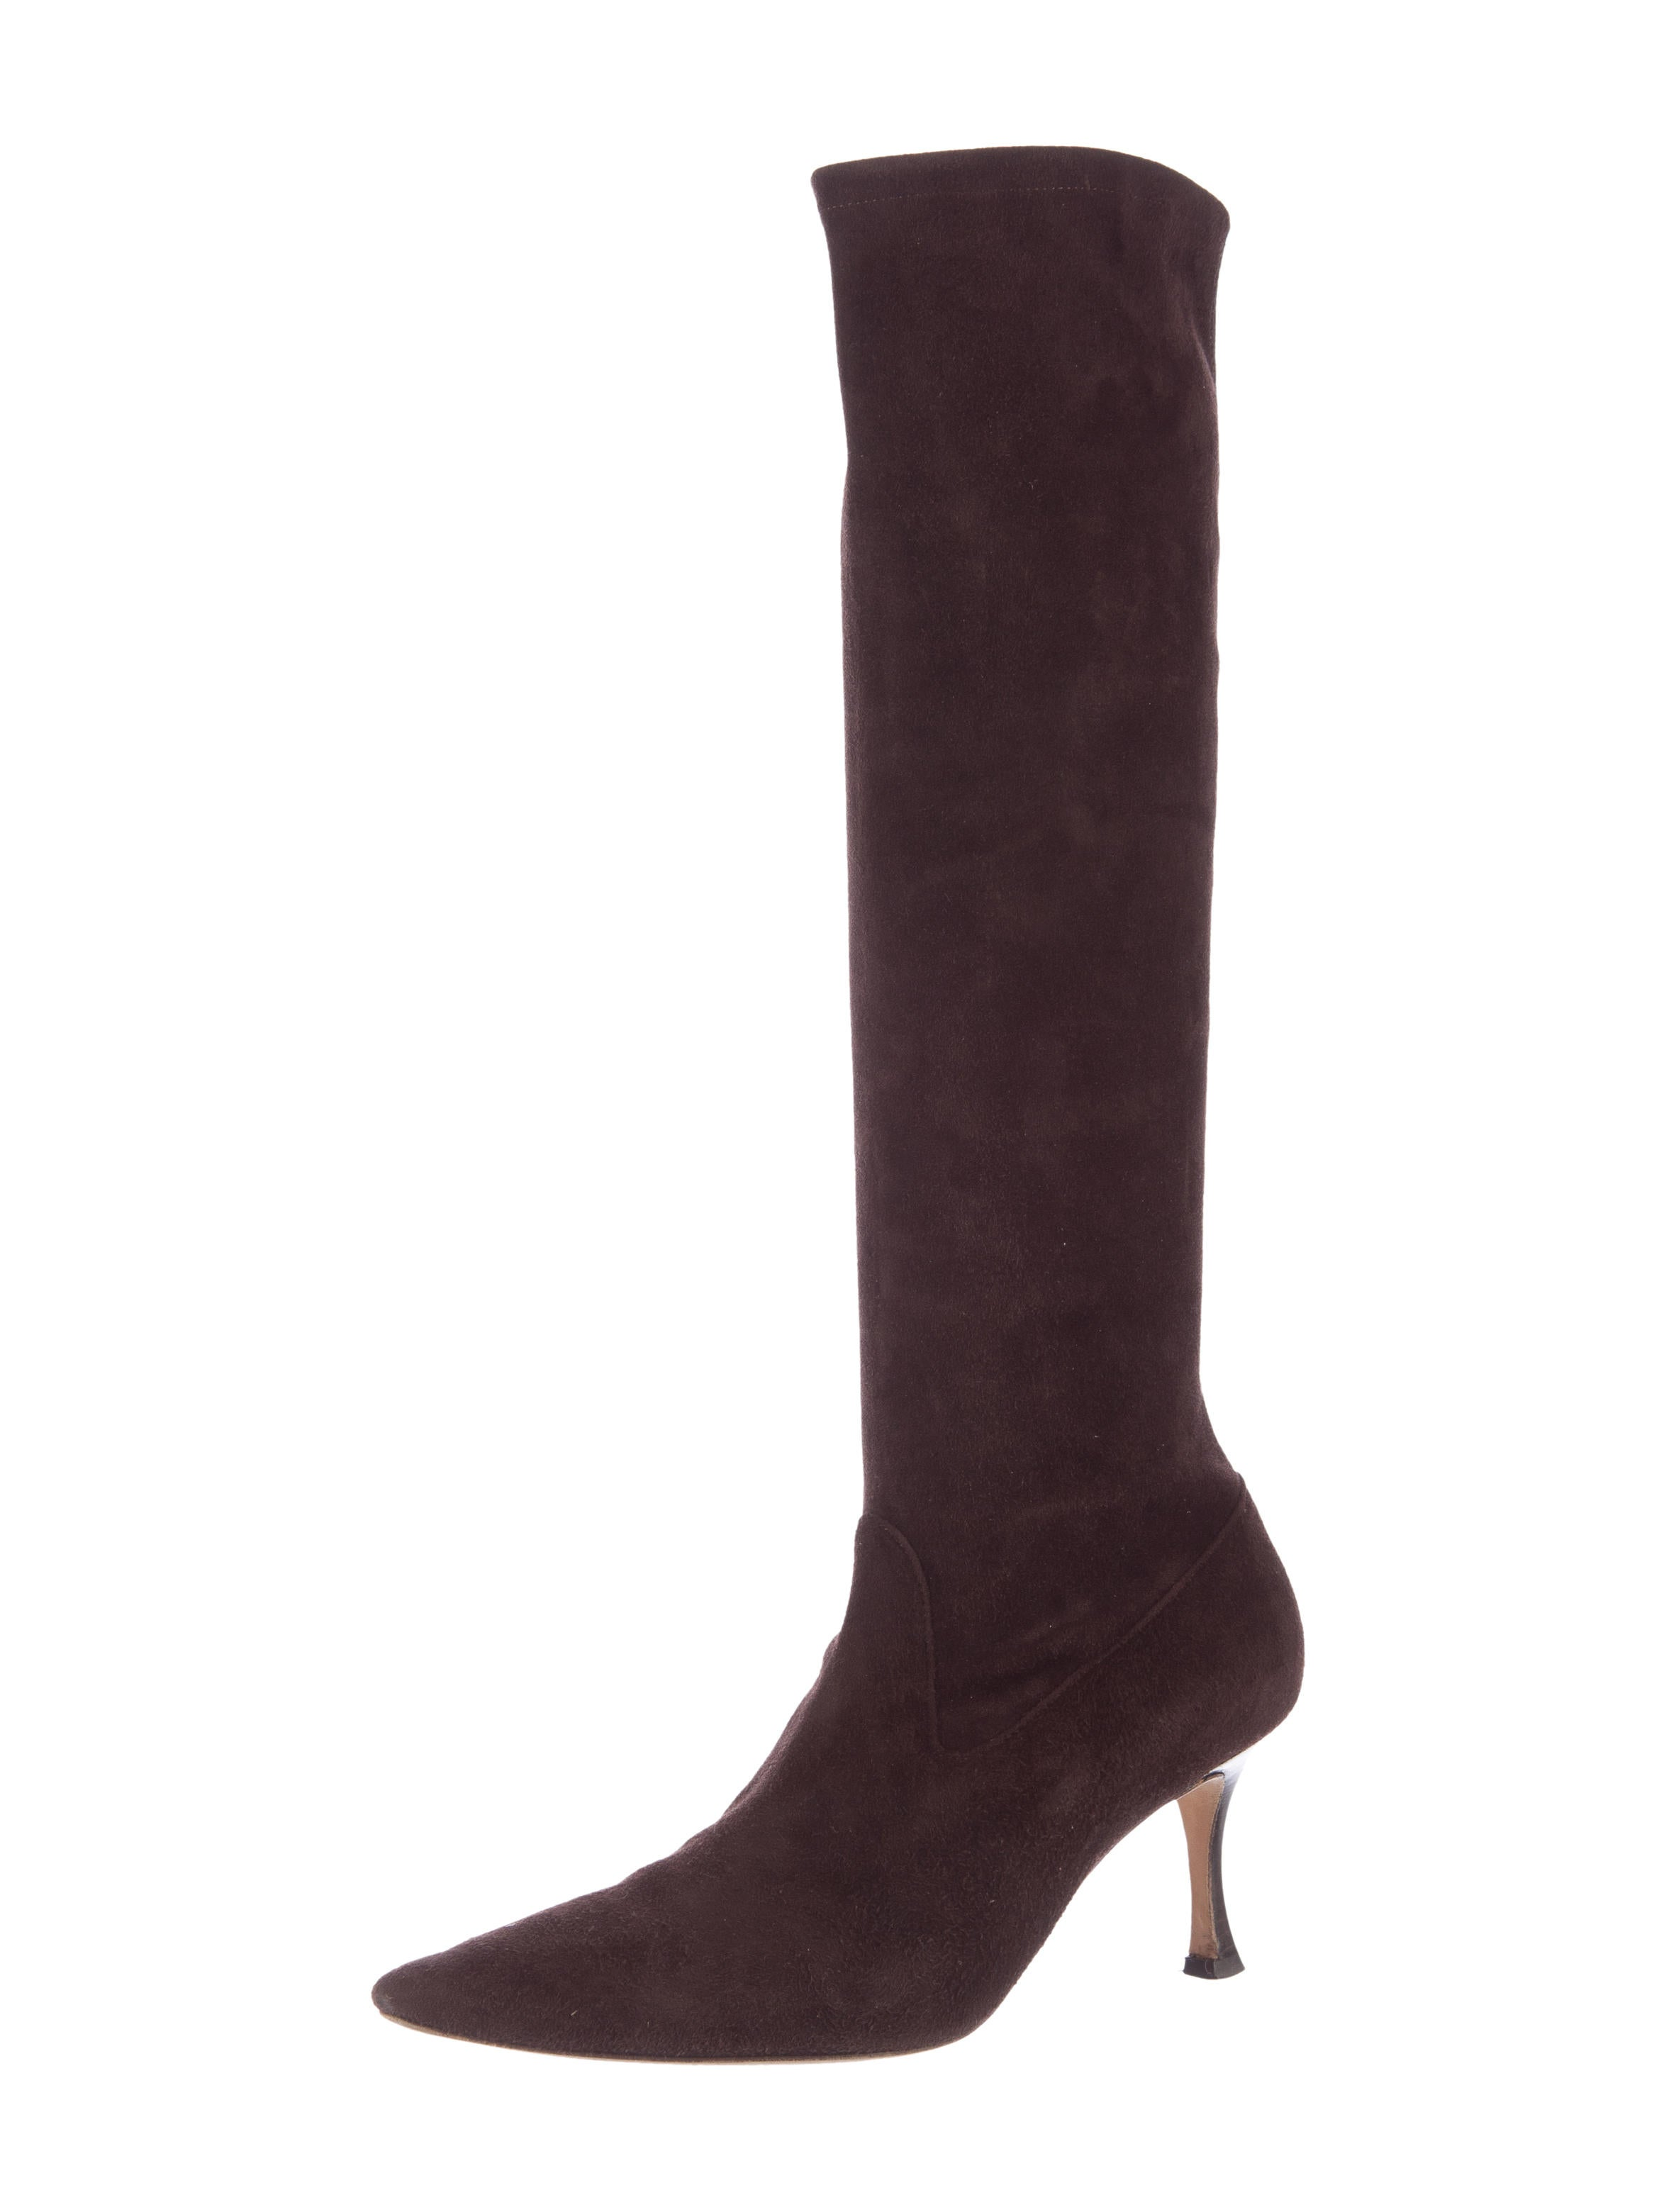 manolo blahnik pointed toe suede boots shoes moo61179